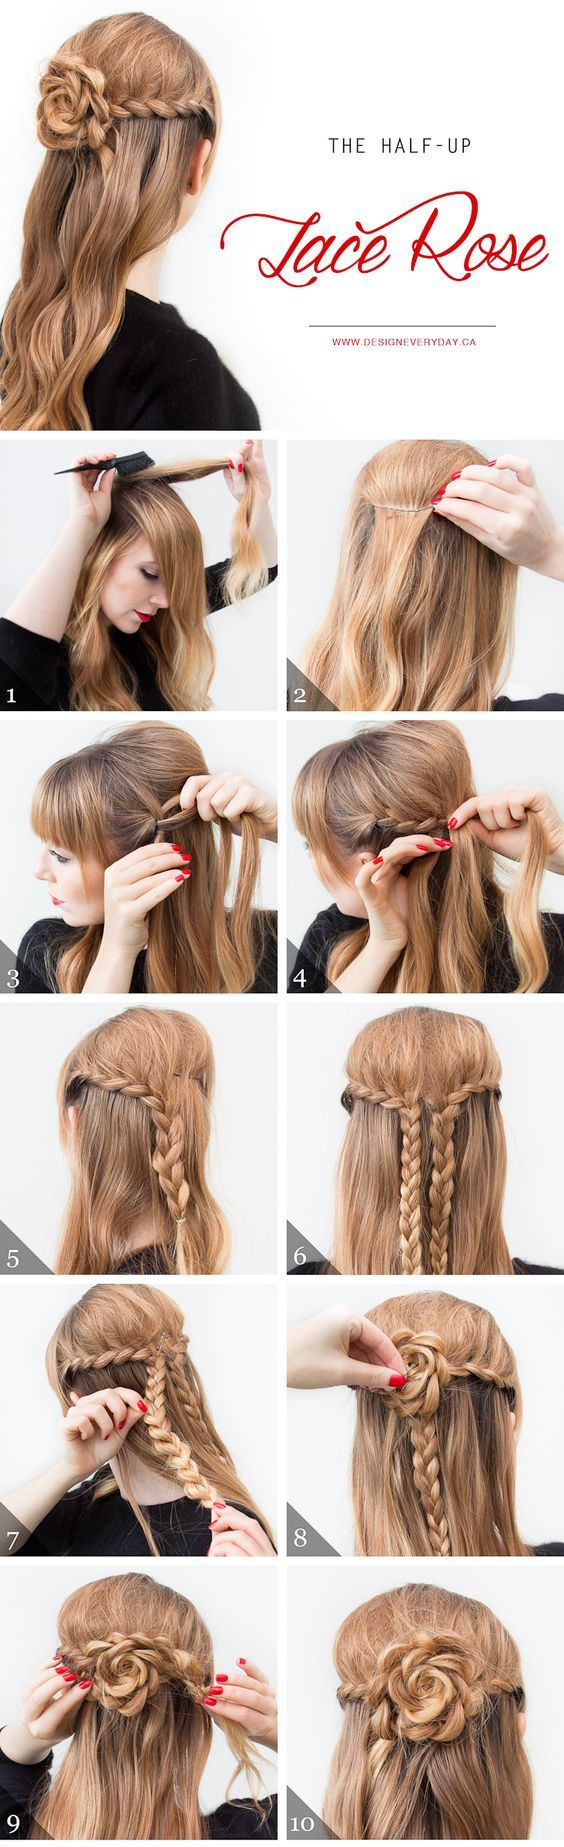 super easy diy braided hairstyles for wedding tutorials | crown